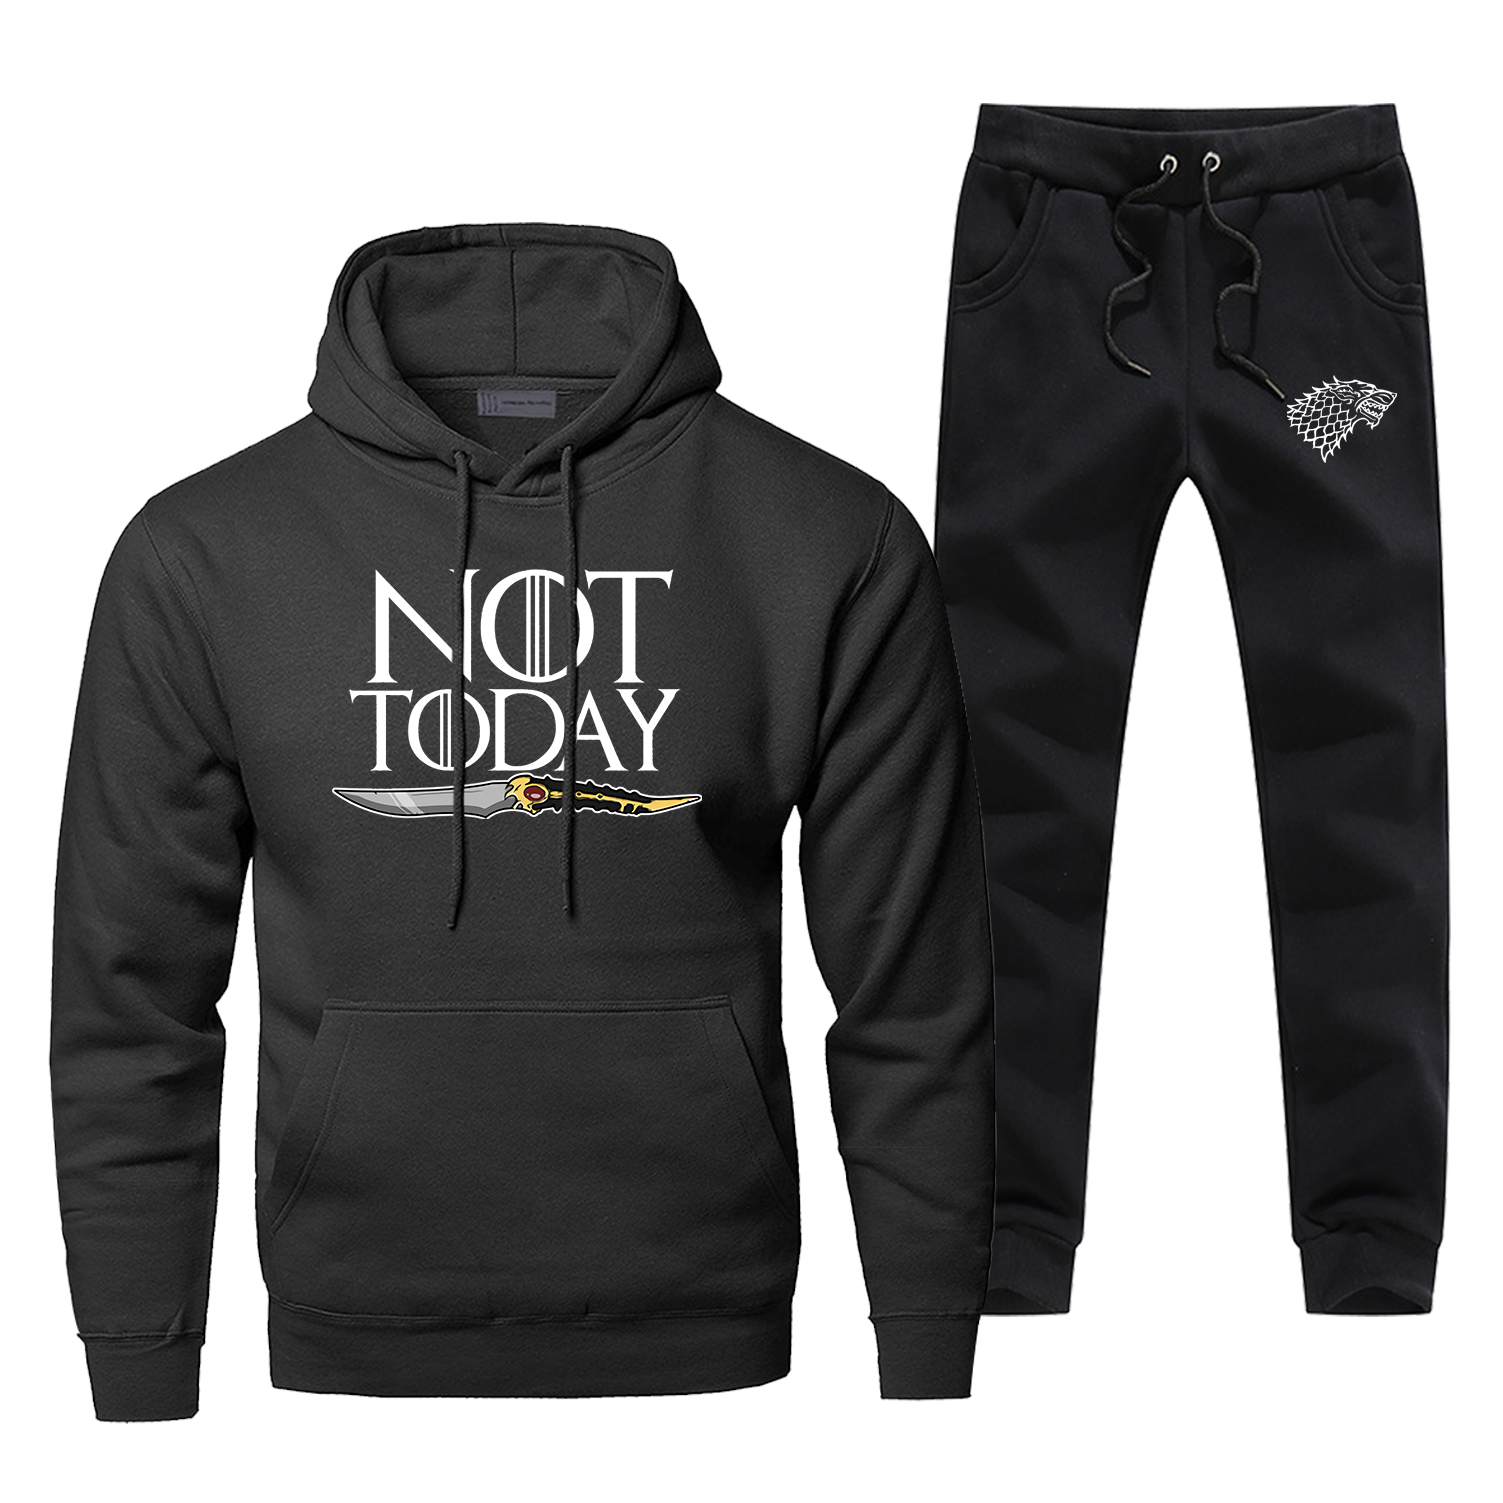 Game Of Thrones Not Today Hoodies Pants Men Suit Tracksuit Ayra House Stark Sweatshirt Sweatpants Sportswear Autumn Sports Set